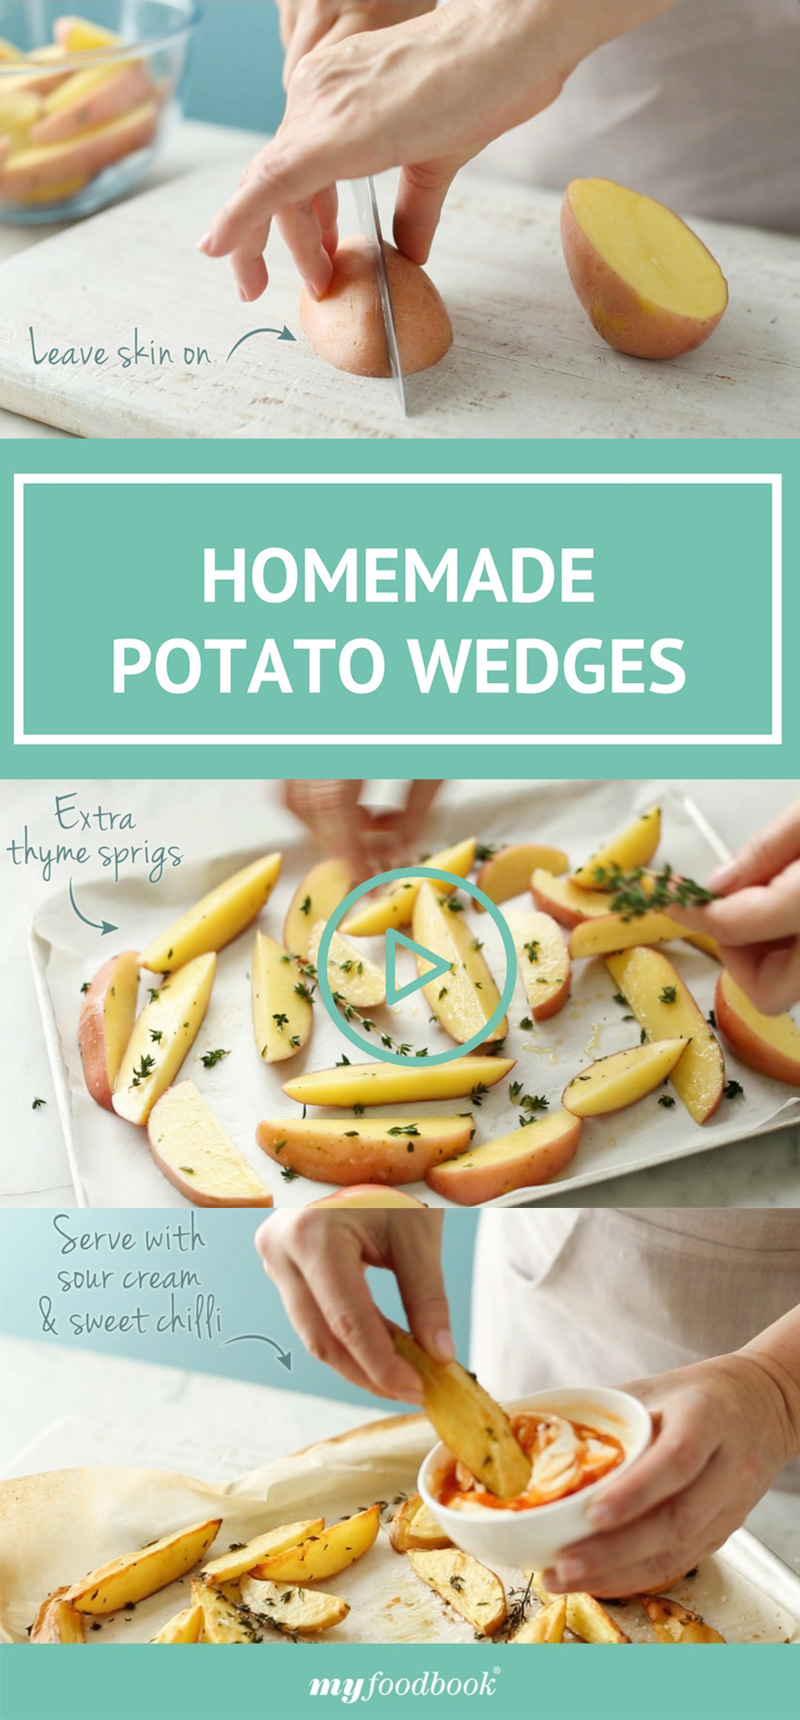 Make easy oven-baked potato wedges with this cooking school video by myfoodbook